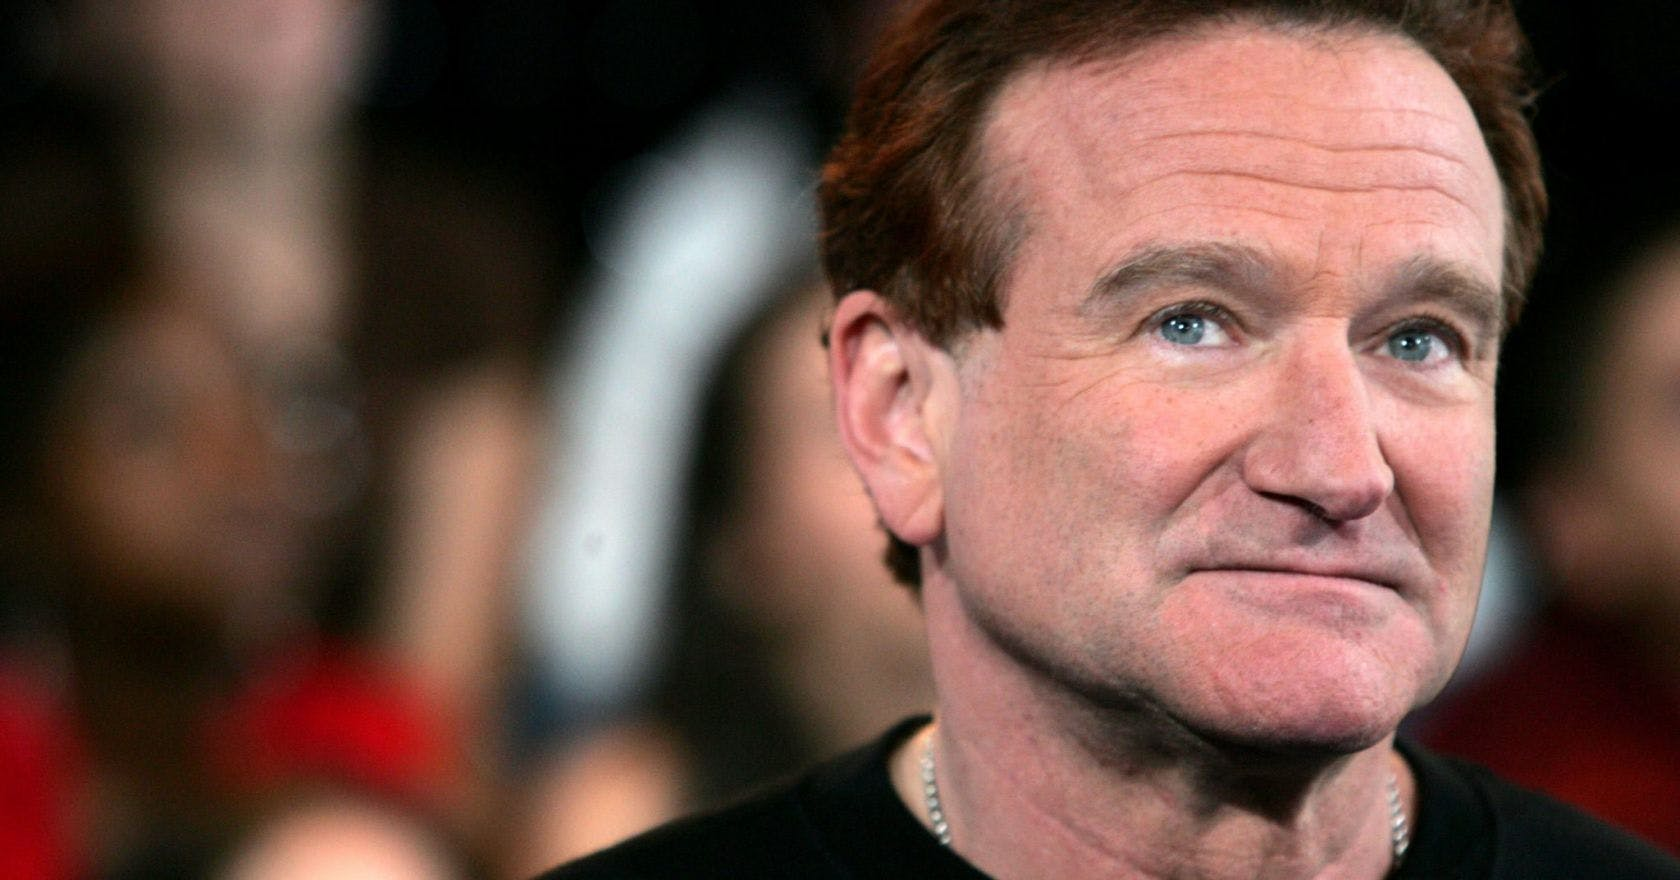 This new Robin Williams documentary calls attention to health issues we need to talk about